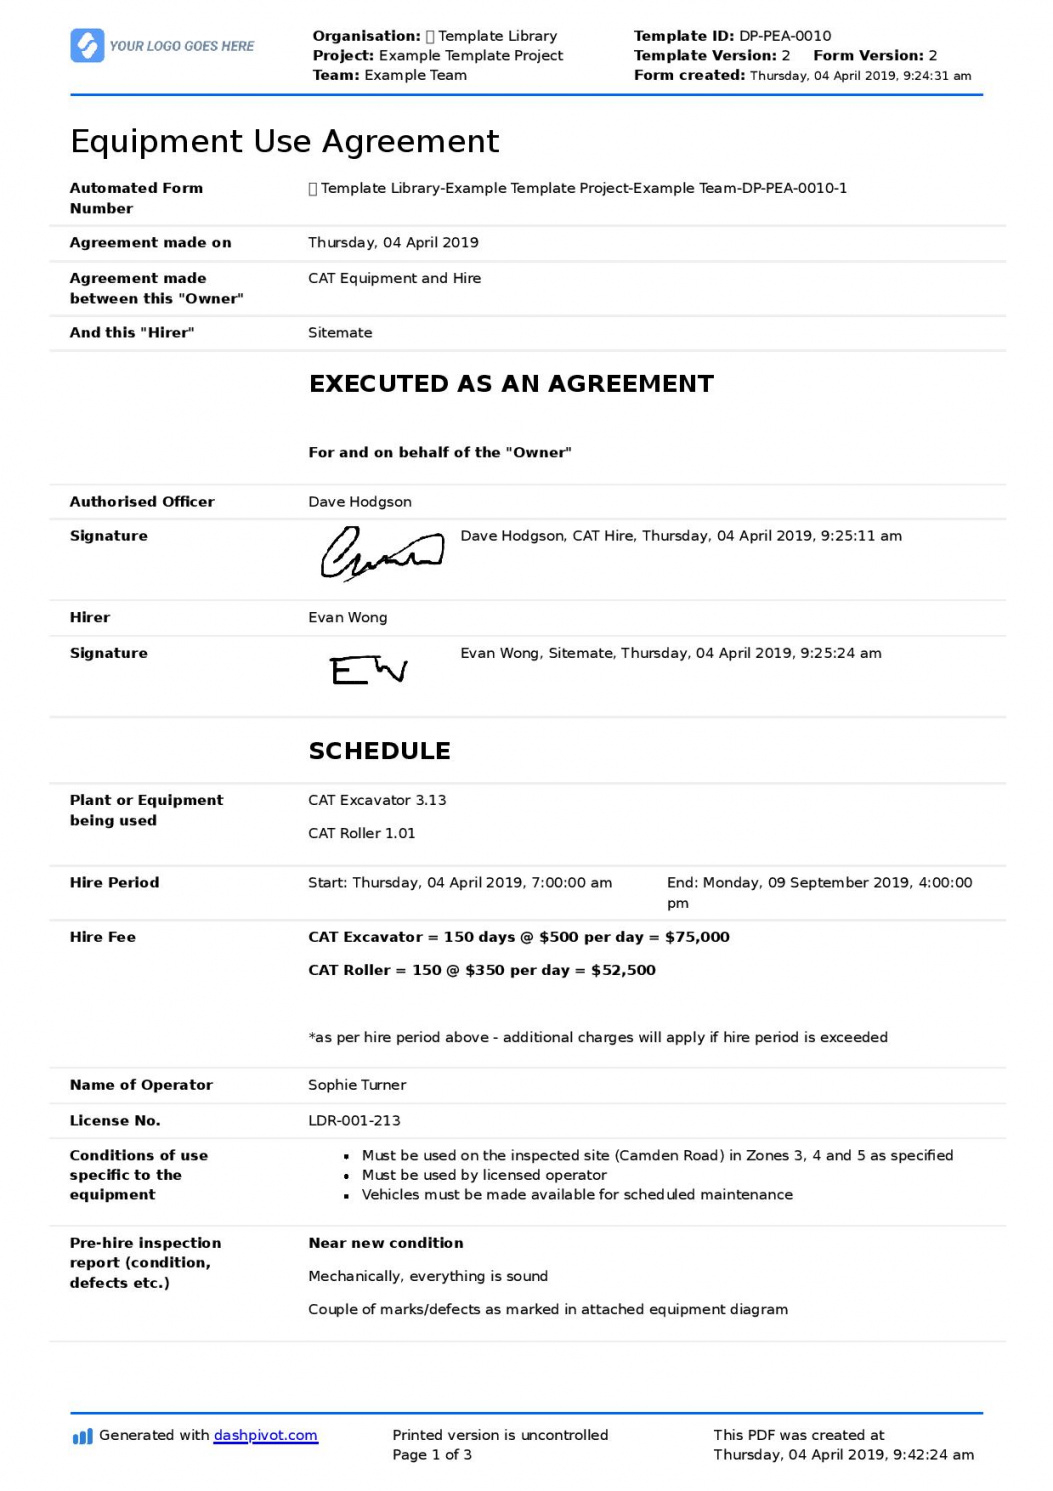 sample equipment use agreement template for companies and employees equipment use agreement template doc